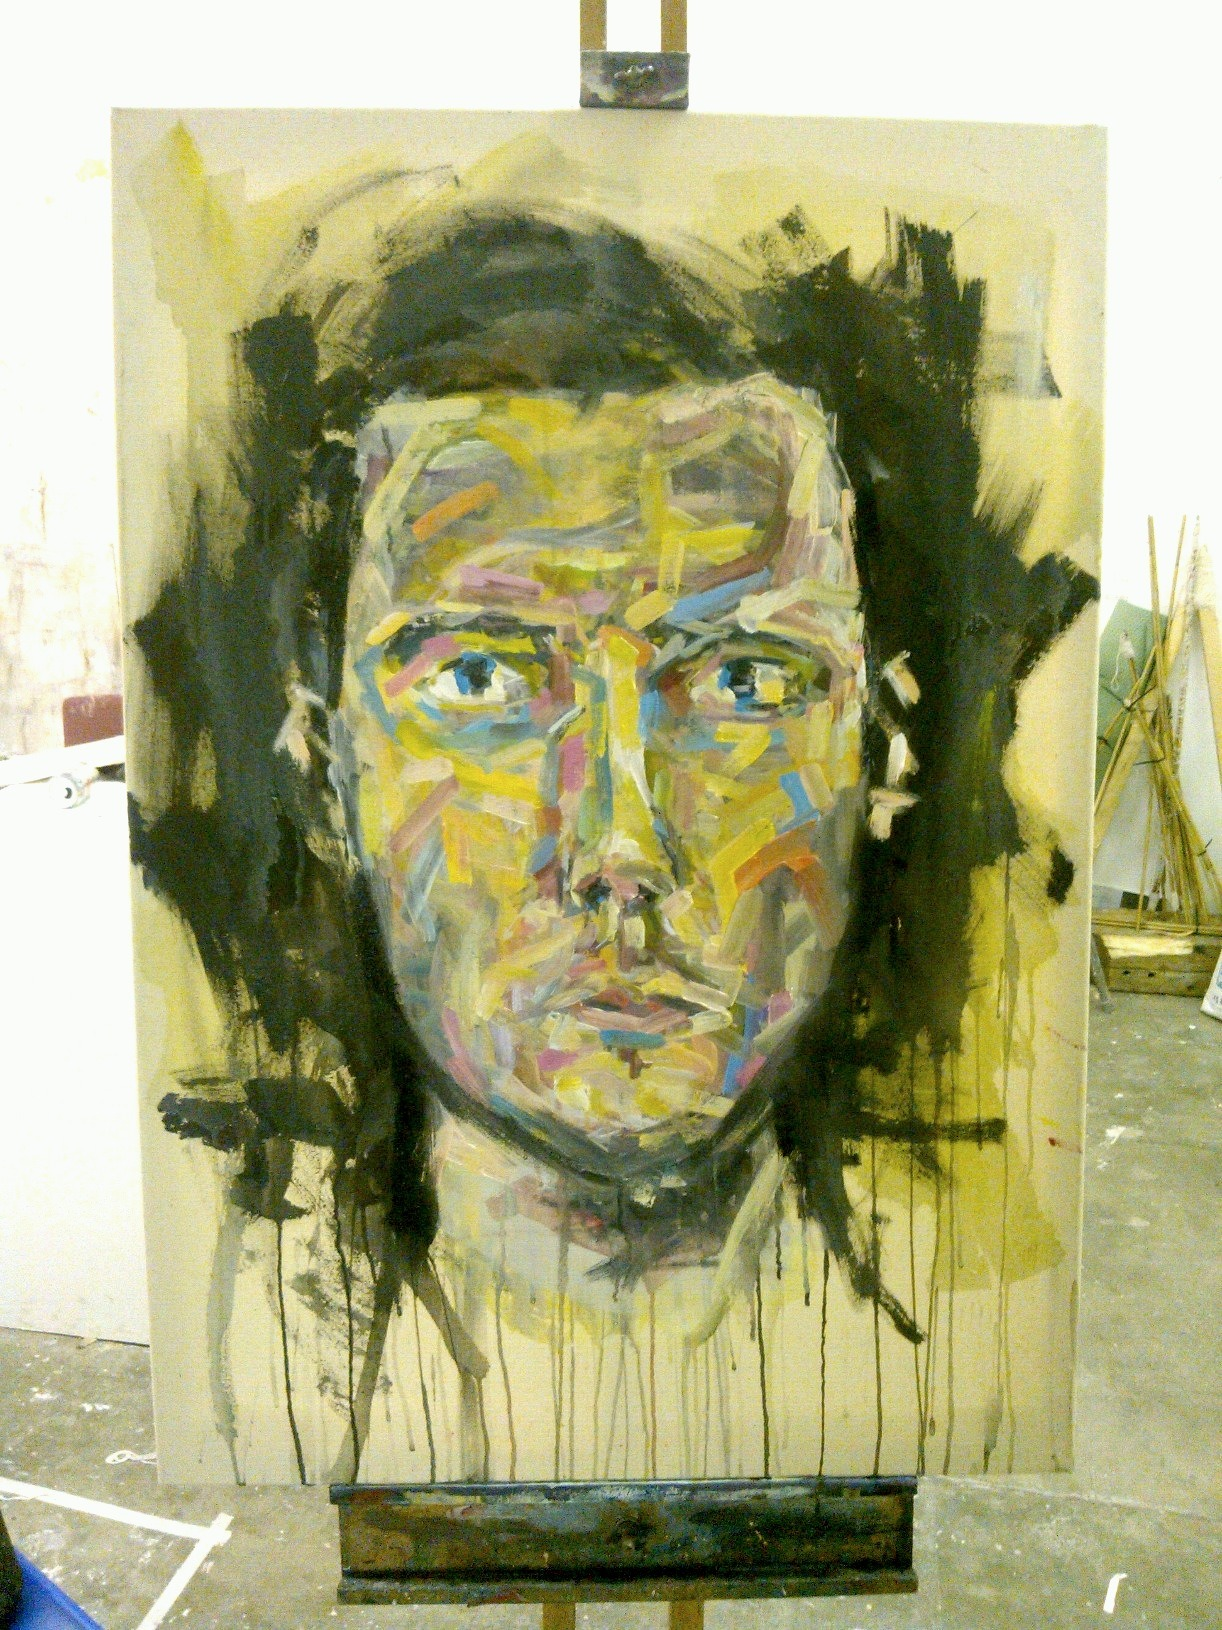 Half finished self-portrait - about 75% there